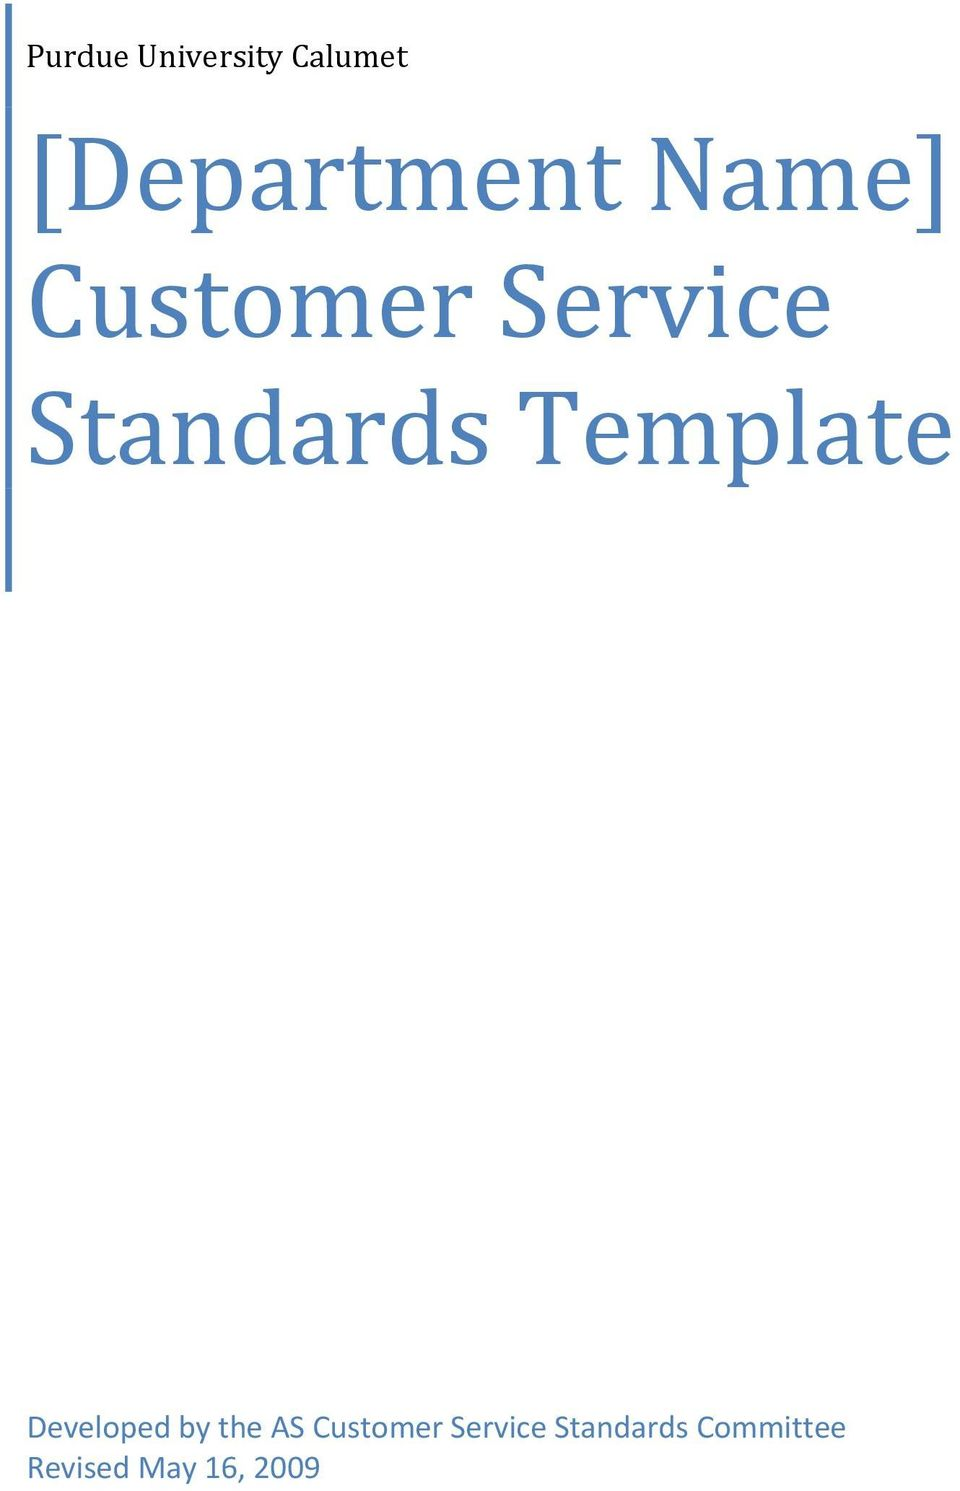 Template Developed by the AS Customer